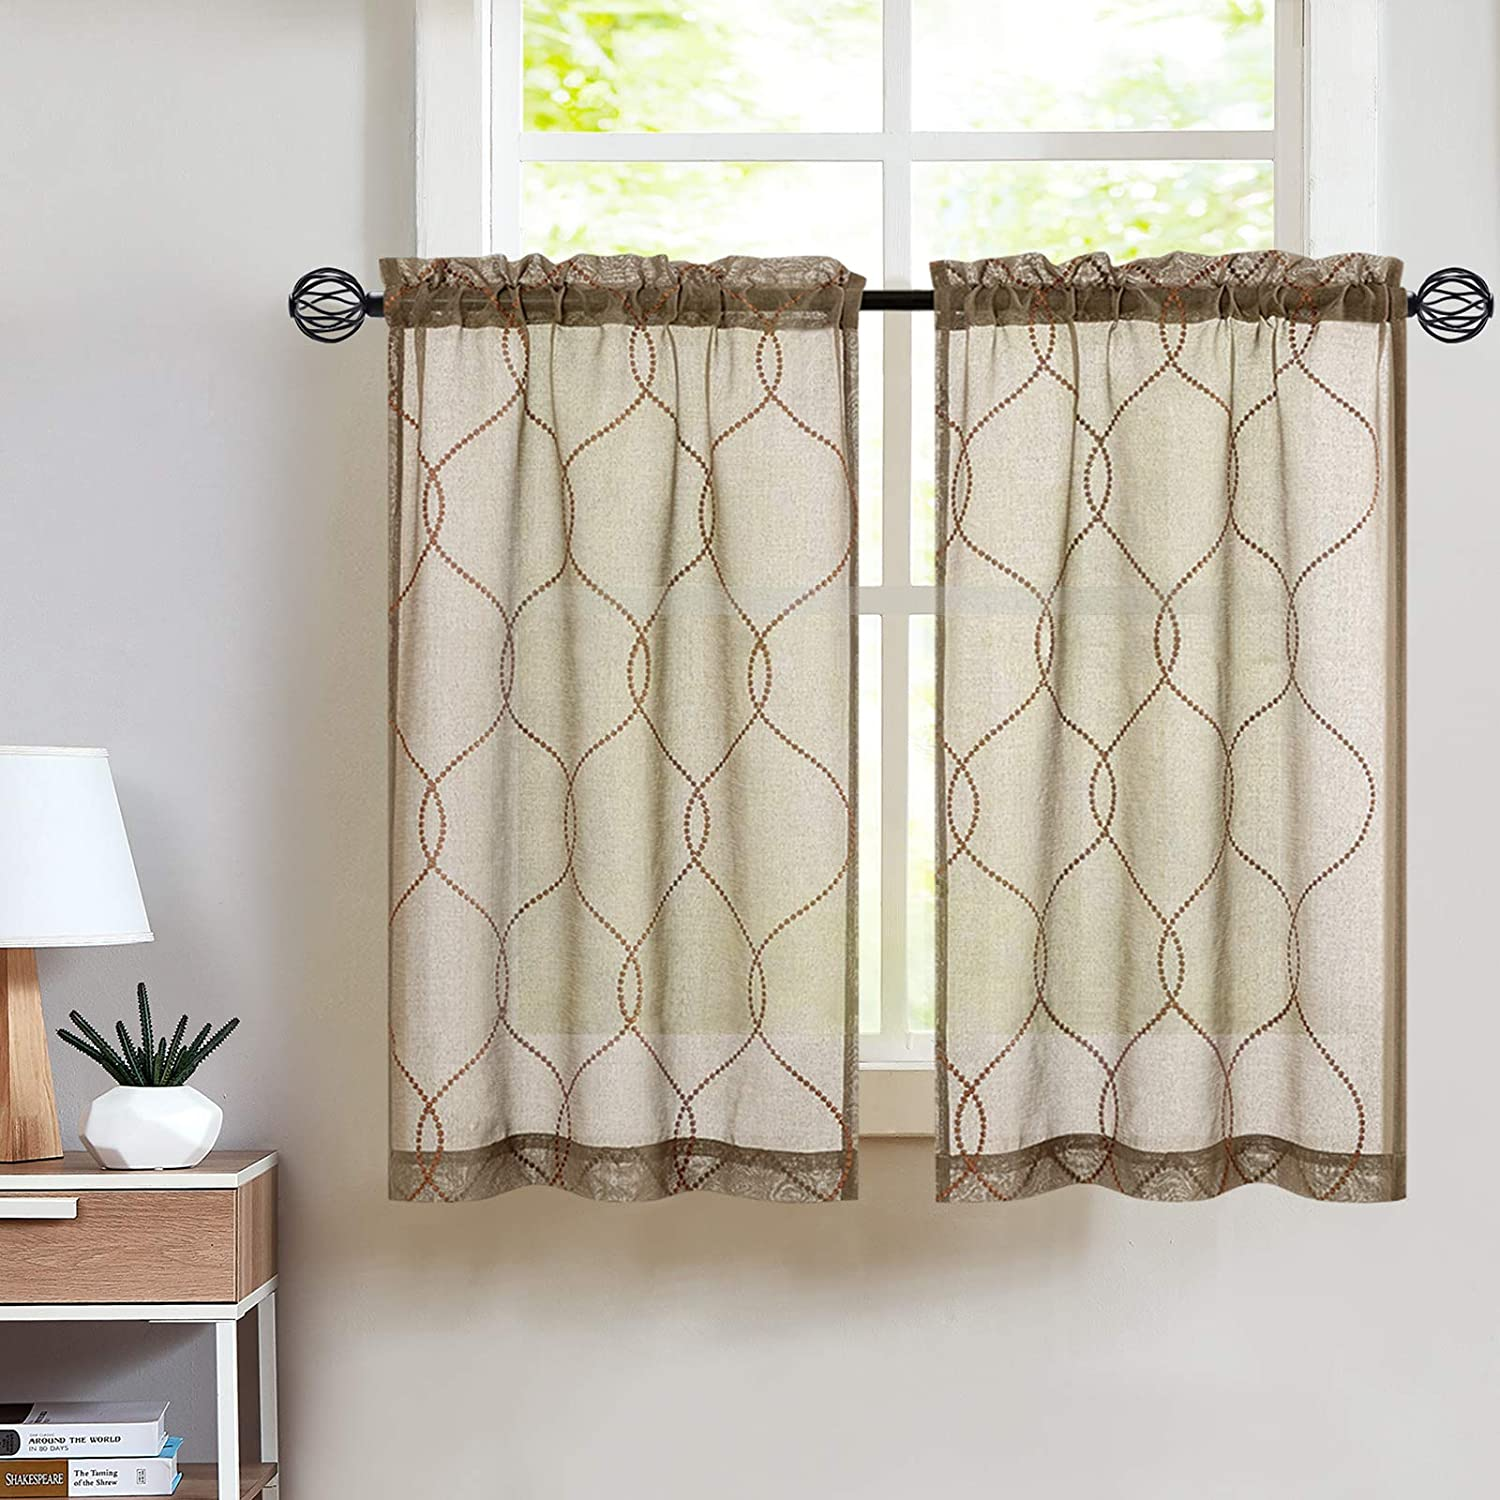 Embroidery Kitchen Curtain Sets 3 Pcs Moroccan Trellis Pattern Embroidered Semi Sheer Kitchen Tier Curtains and Valance Set 36 inch for Bathroom, Taupe